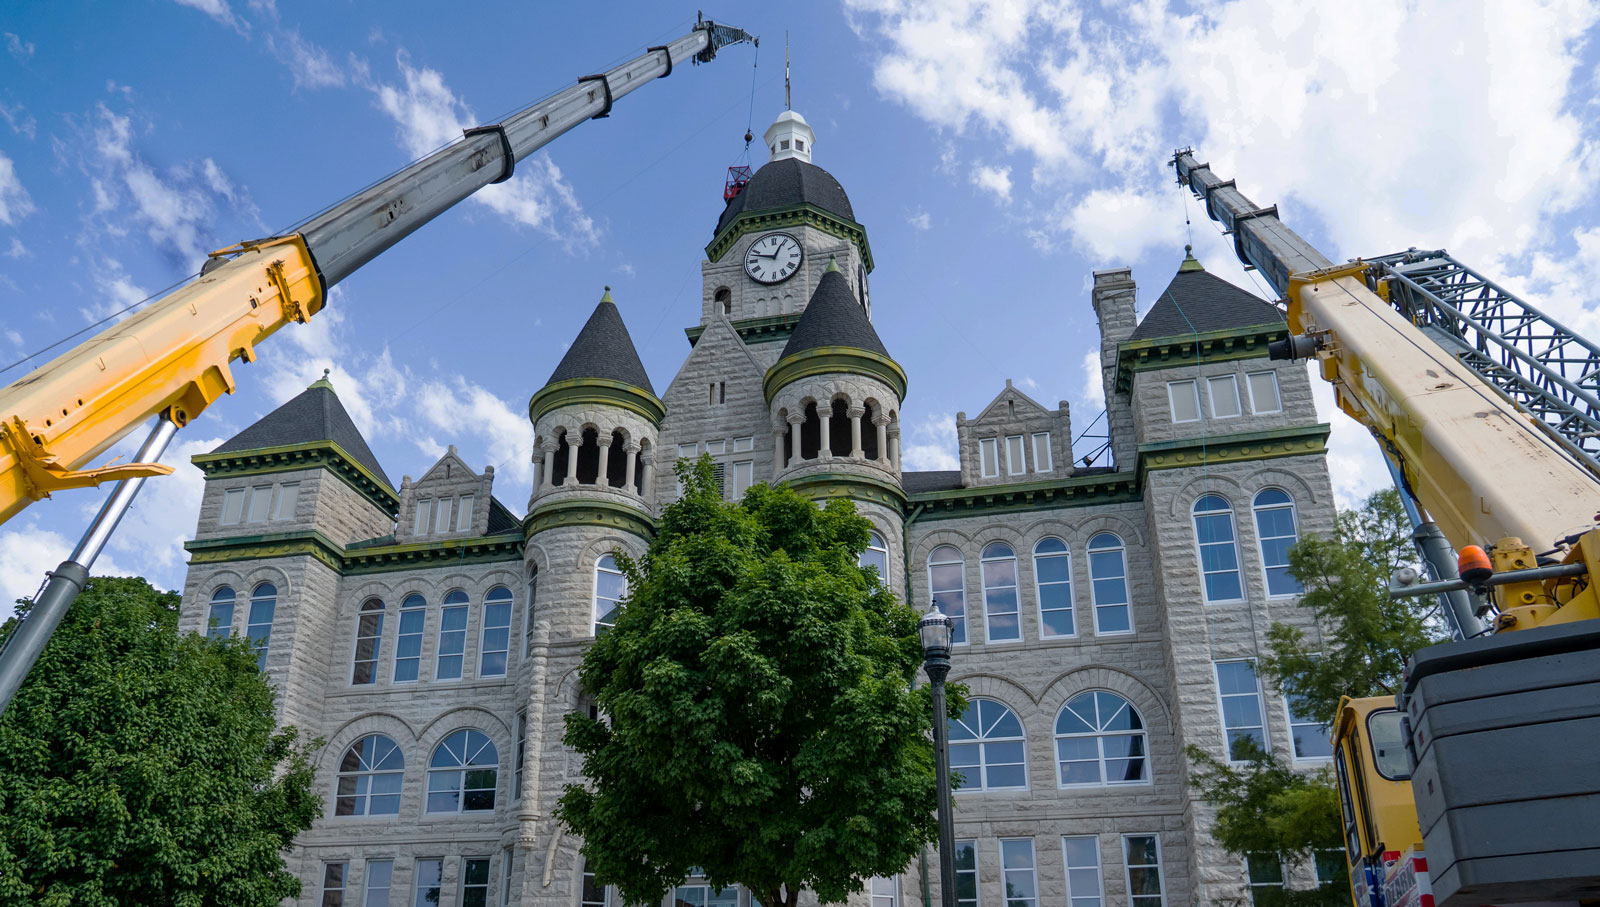 Jasper County Courthouse - Cranes